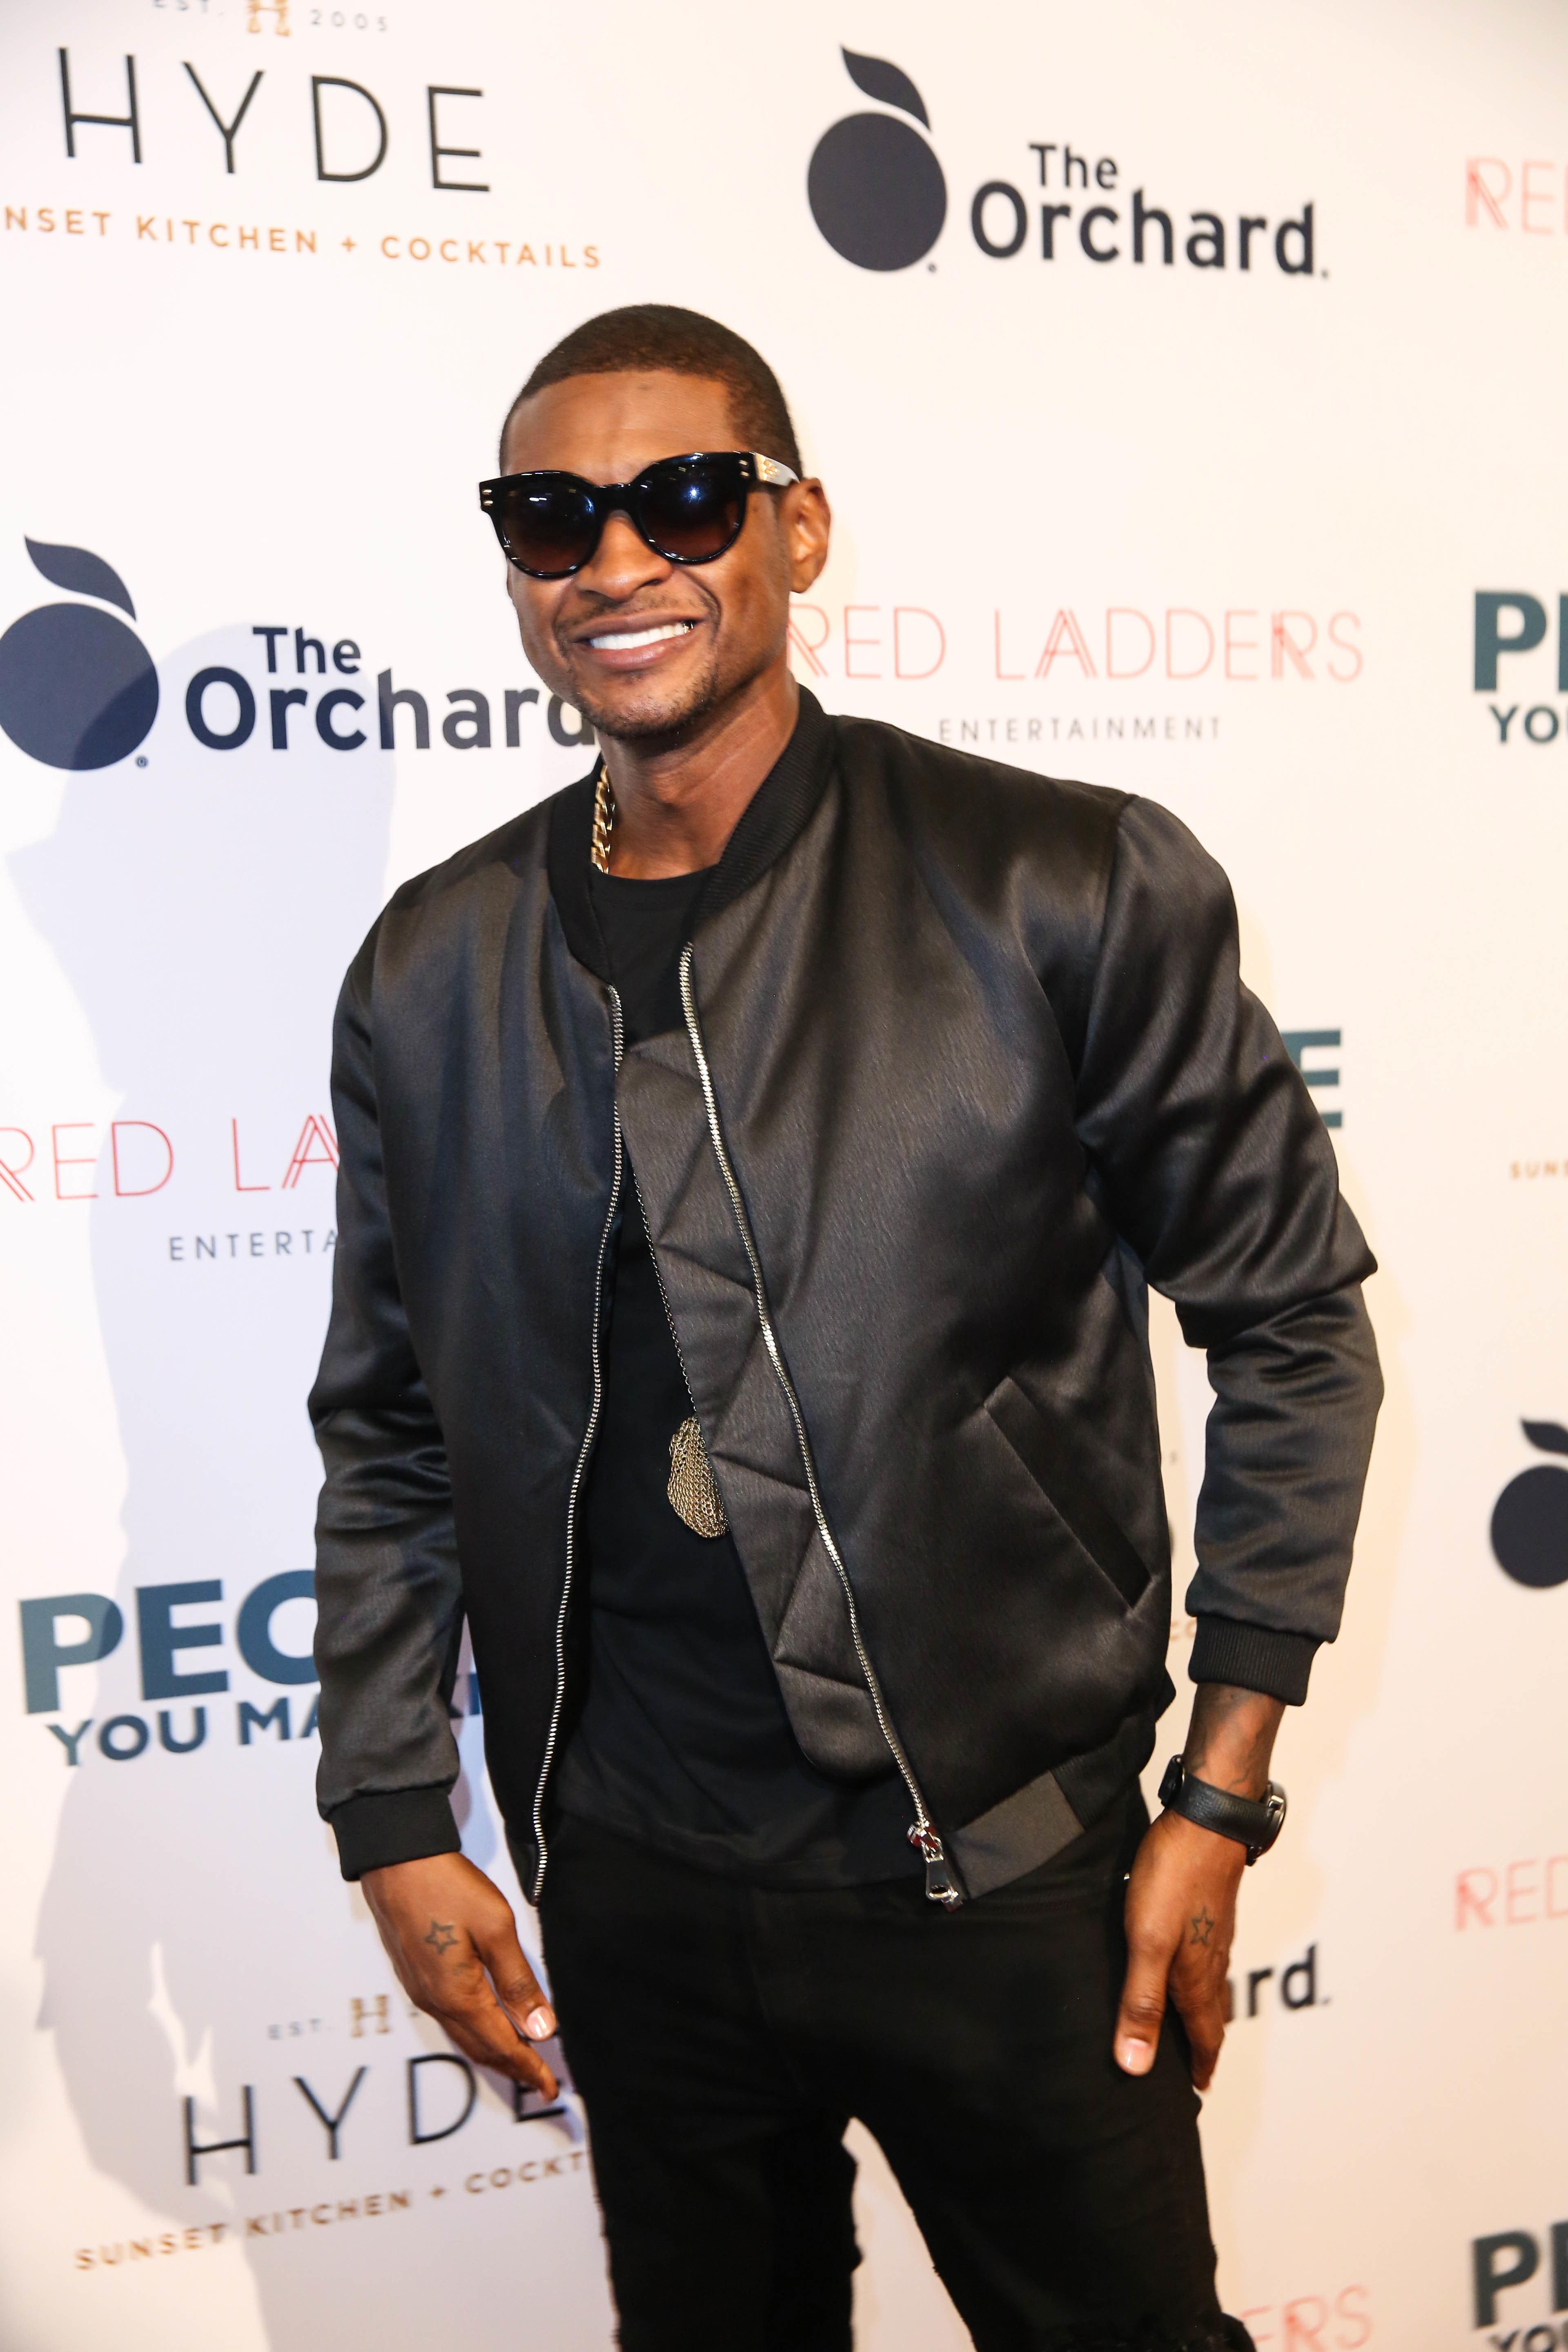 """Usher attends the """"People You May Know"""" premiere in Los Angeles on Nov. 13, 2017."""